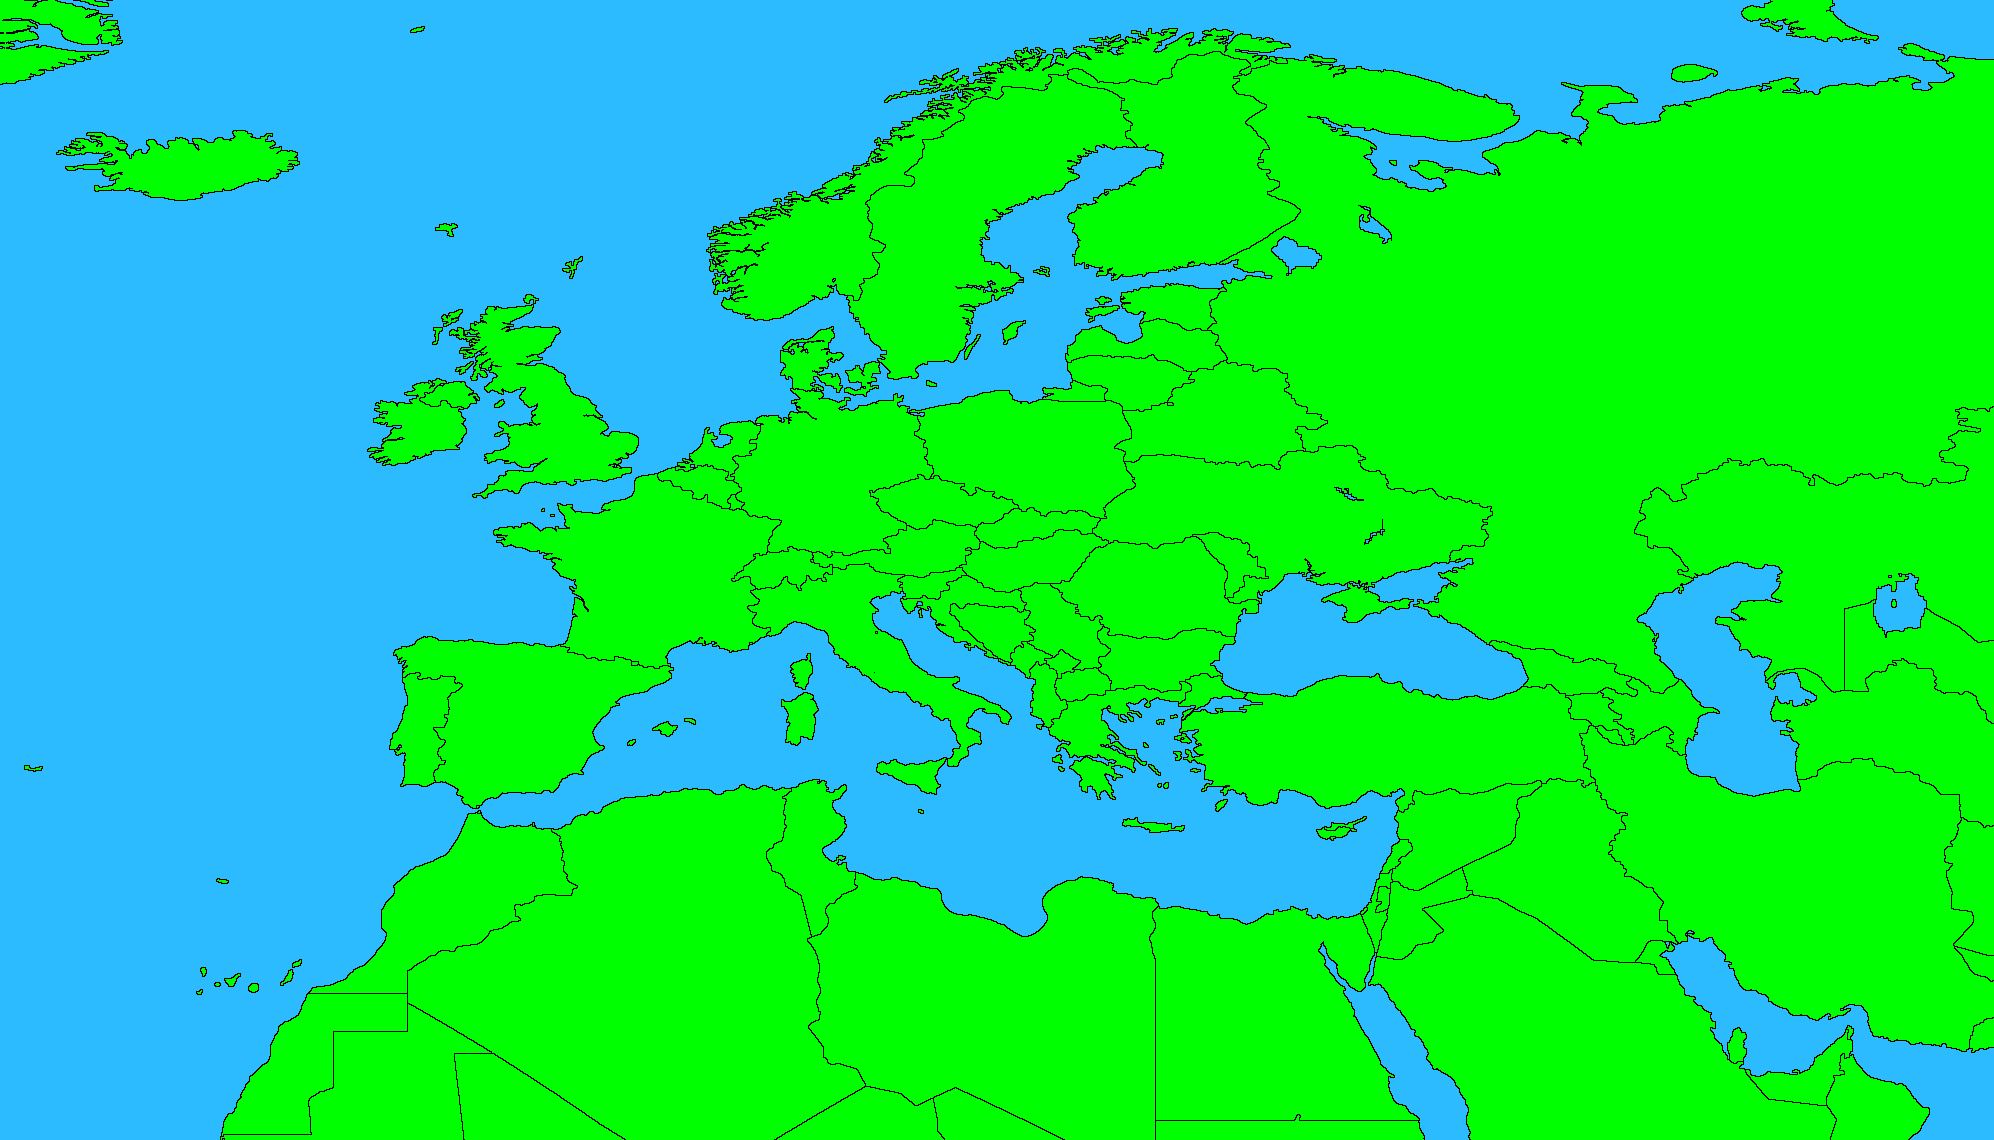 Drexu0027s Map Of Europe Without Names.png